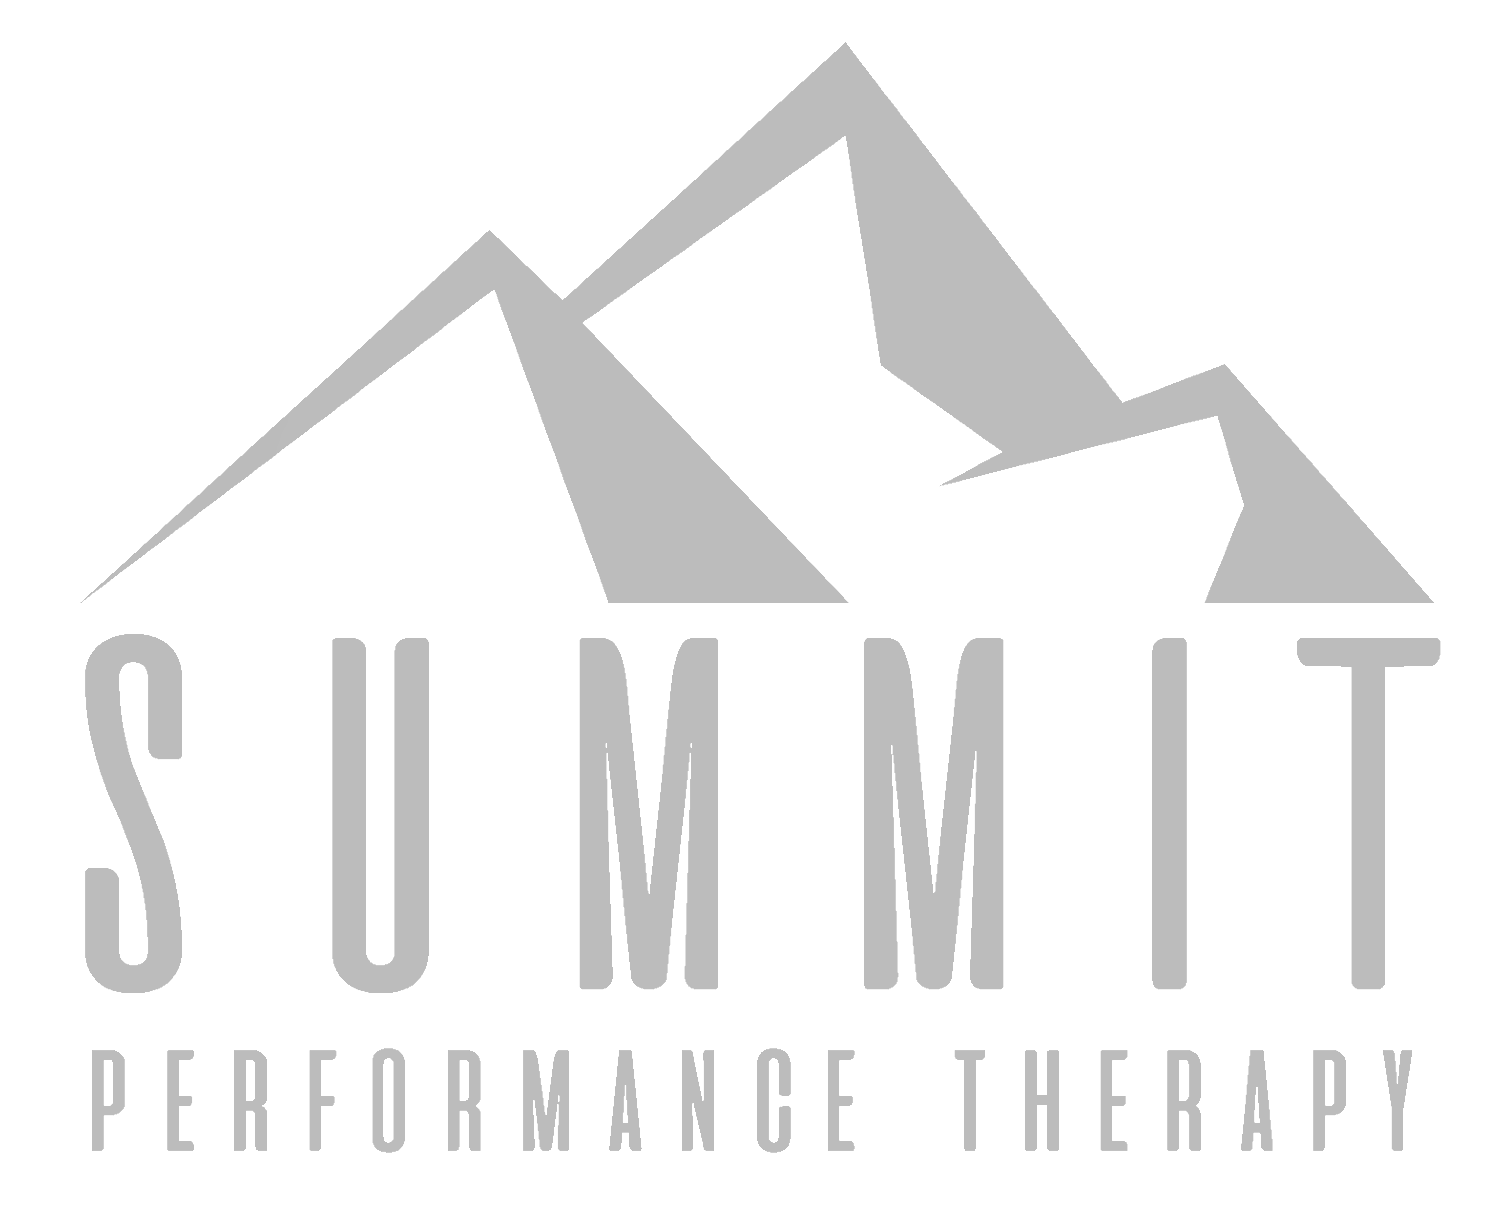 Summit Performance Therapy